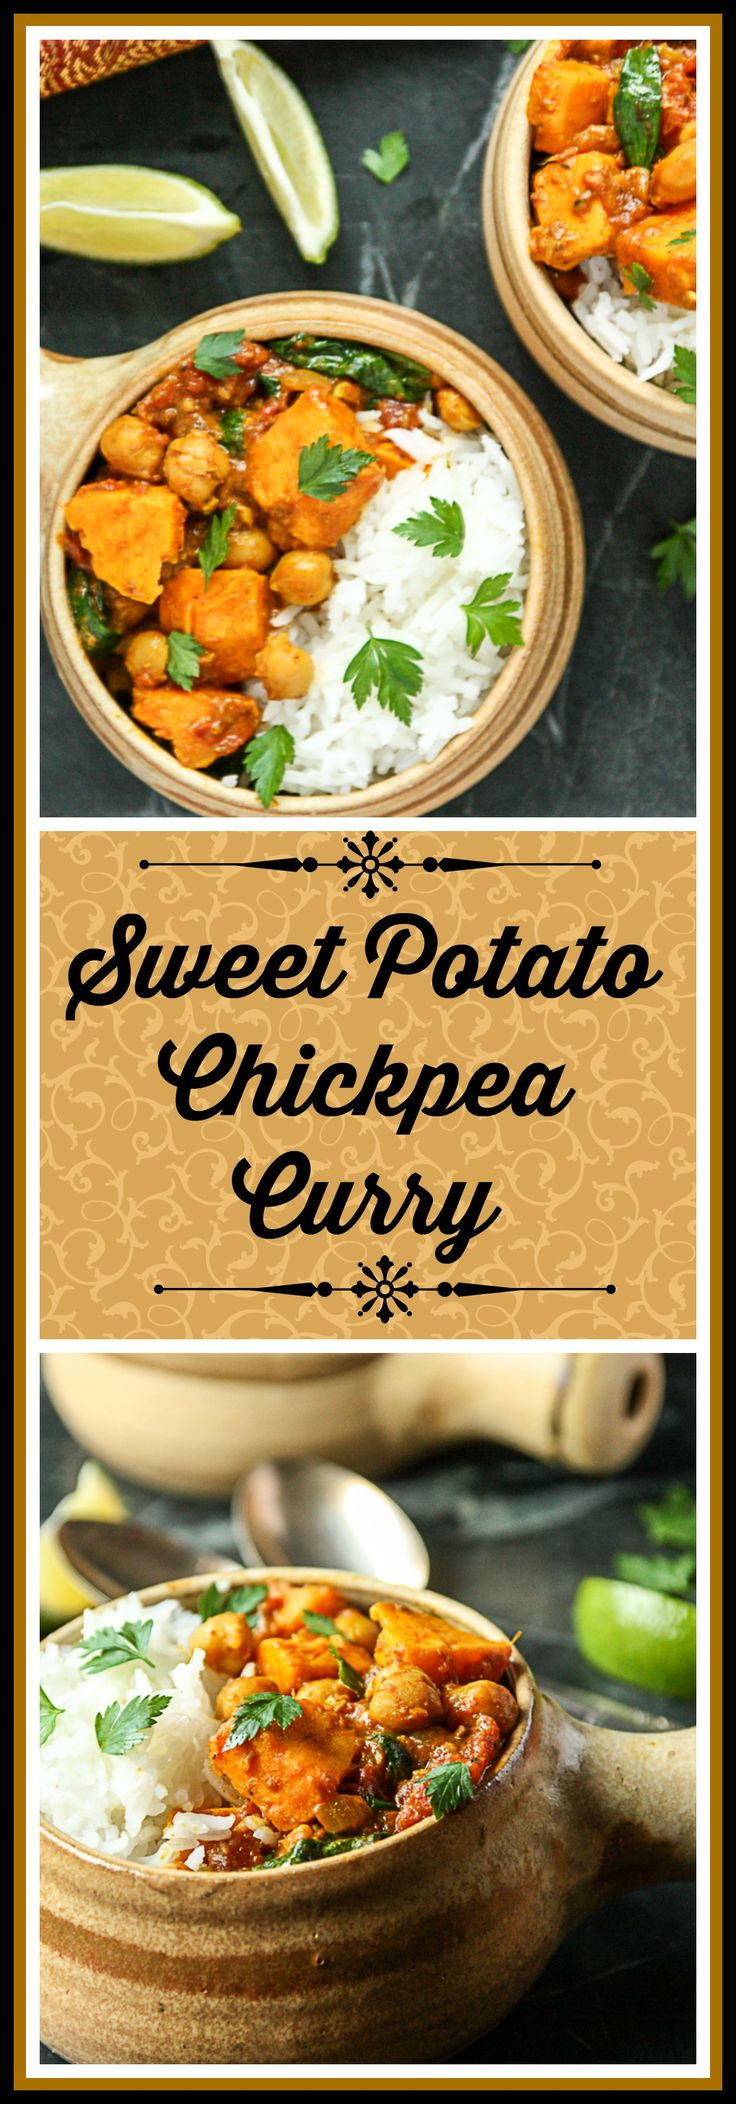 Vegetarian Chickpea Curry with Sweet Potatoes, simmered in coconut and flavored with Garam Masala. A delicious and easy one pot dinner.